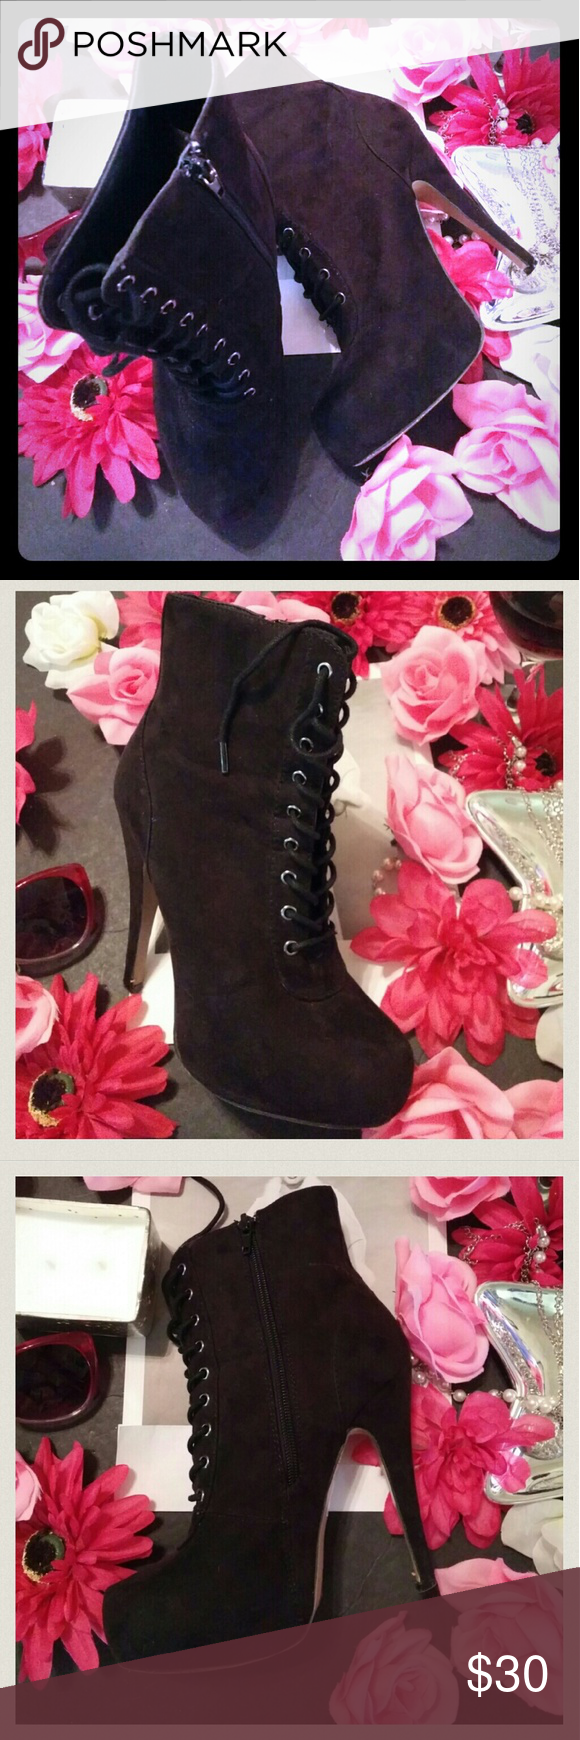 Forever 21 black ankle boots Forever 21 black ankle boots size 7 with 5inch heel. They have zip size and lace front with almond pointed toe. Suede like material. Very hot and stylish! They are used, but great condtion. Spots on back of both shoes see 4th pic. The white spot in seam doesn't look as bad as pic. thanks for looking! Forever 21 Shoes Ankle Boots & Booties